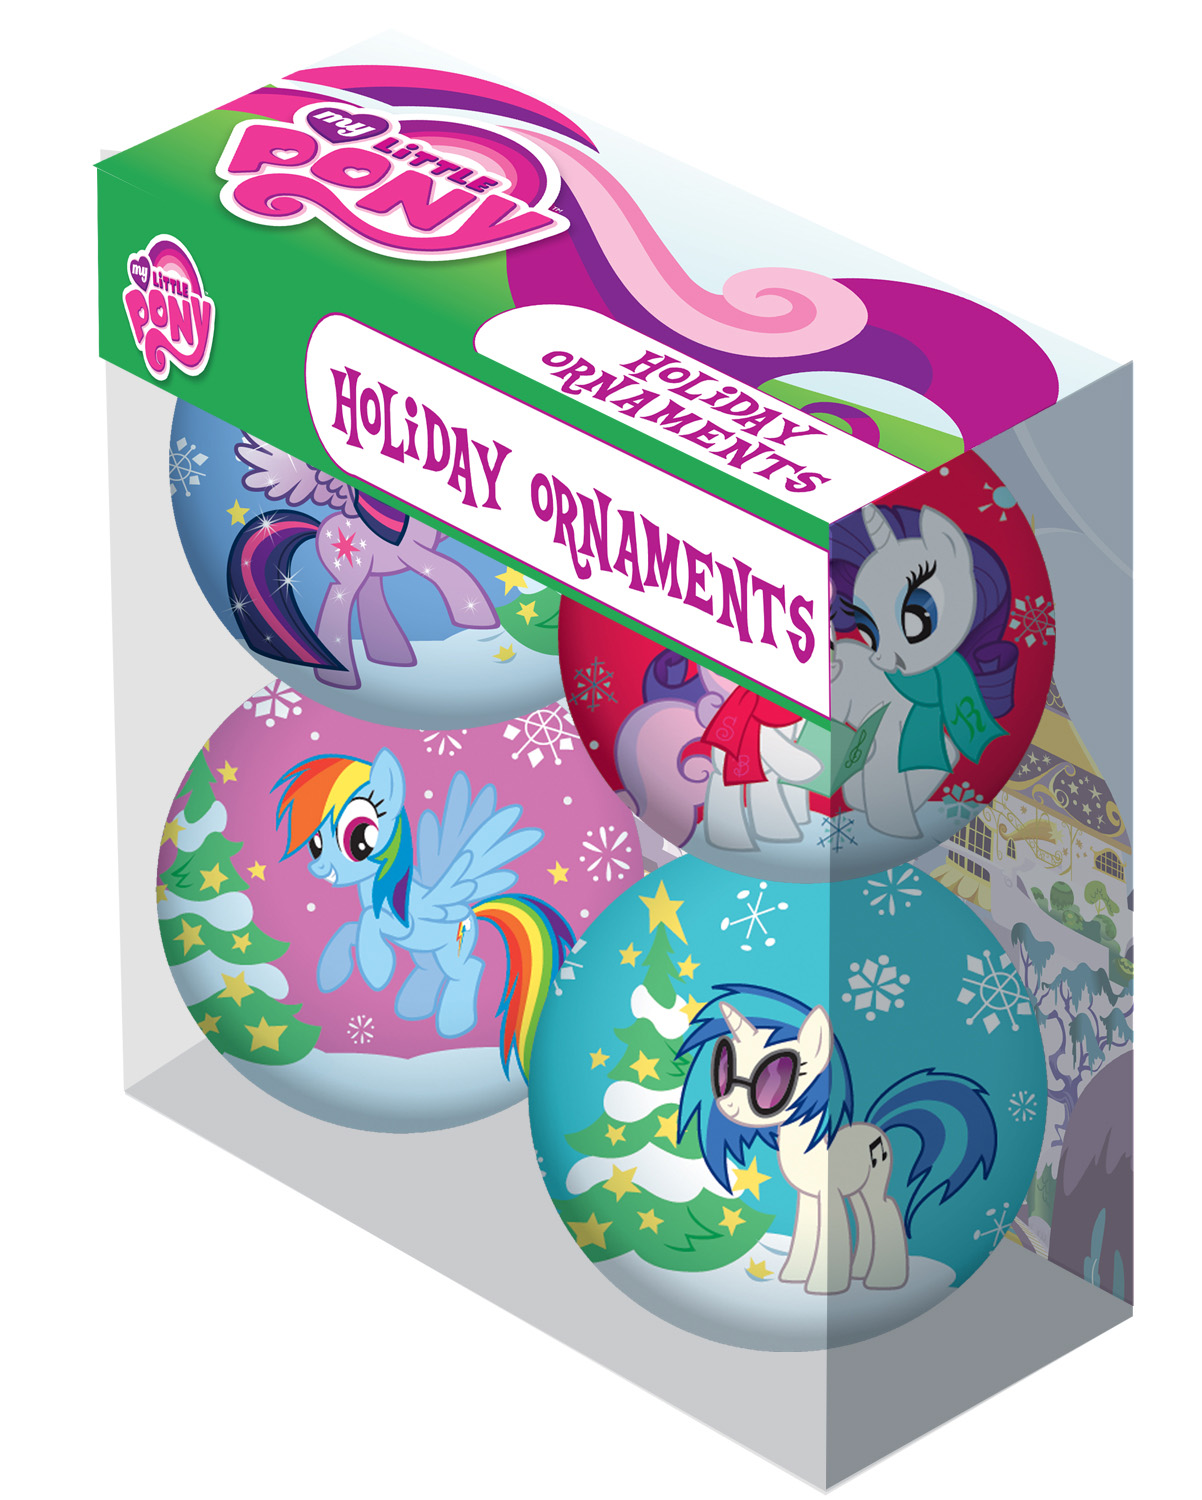 My Little Pony Christmas.My Little Pony Christmas Holiday Ornaments Pack Set